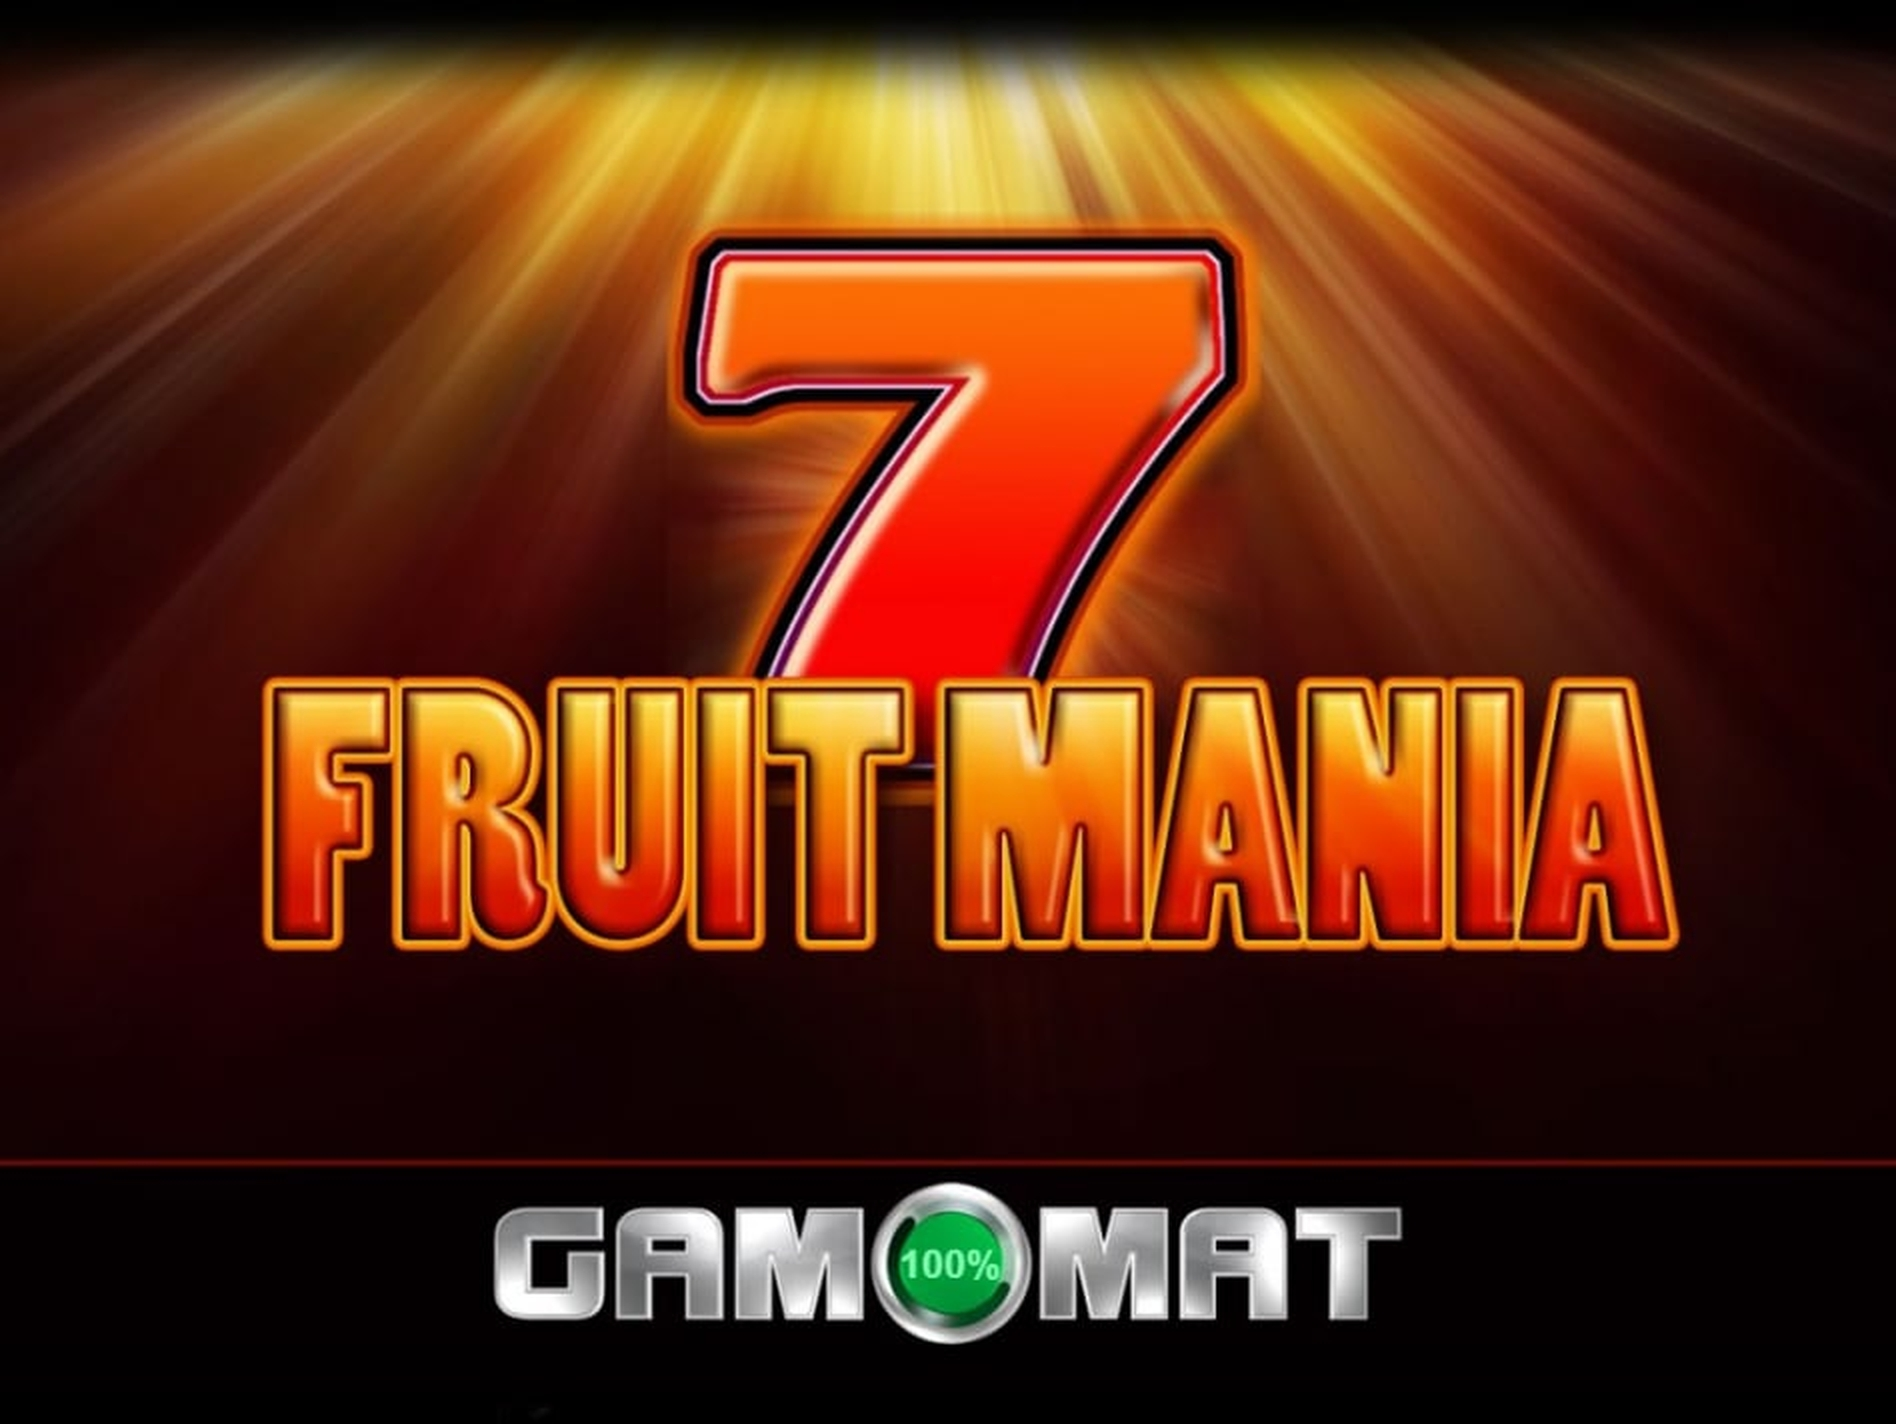 The Fruit Mania GDN Online Slot Demo Game by Gamomat